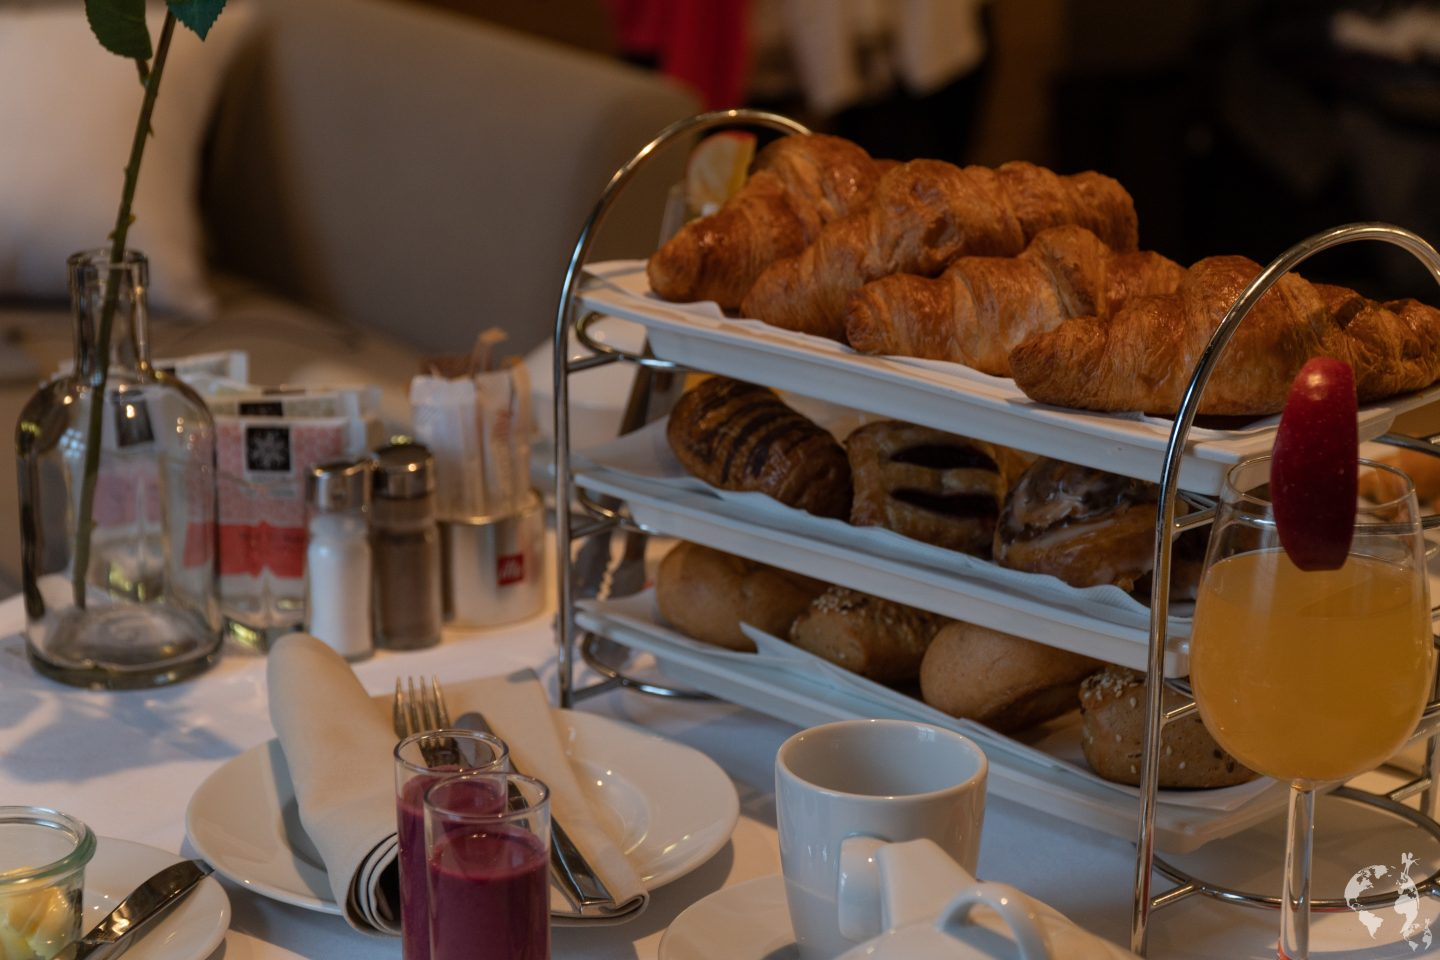 Wonderful breakfast meridien Vienna austria